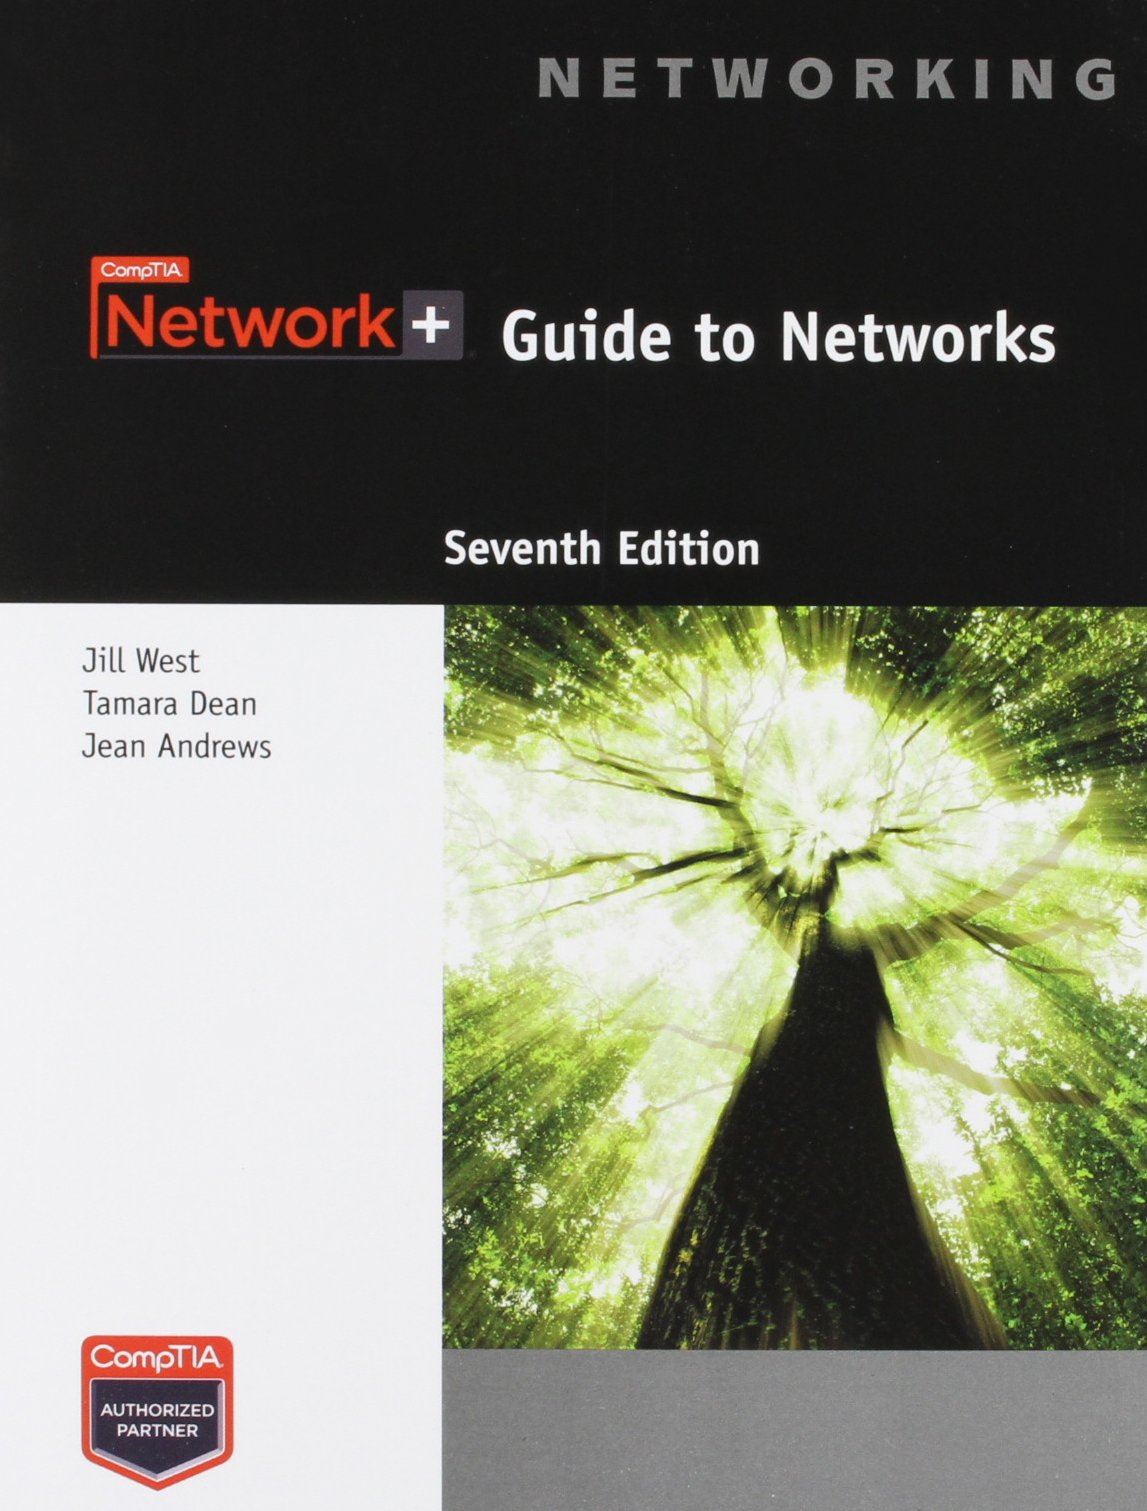 CompTIA Network+ Guide to Networks (Networking): Amazon.co.uk: Jill West, Tamara  Dean, Jean Andrews: 9781305775060: Books